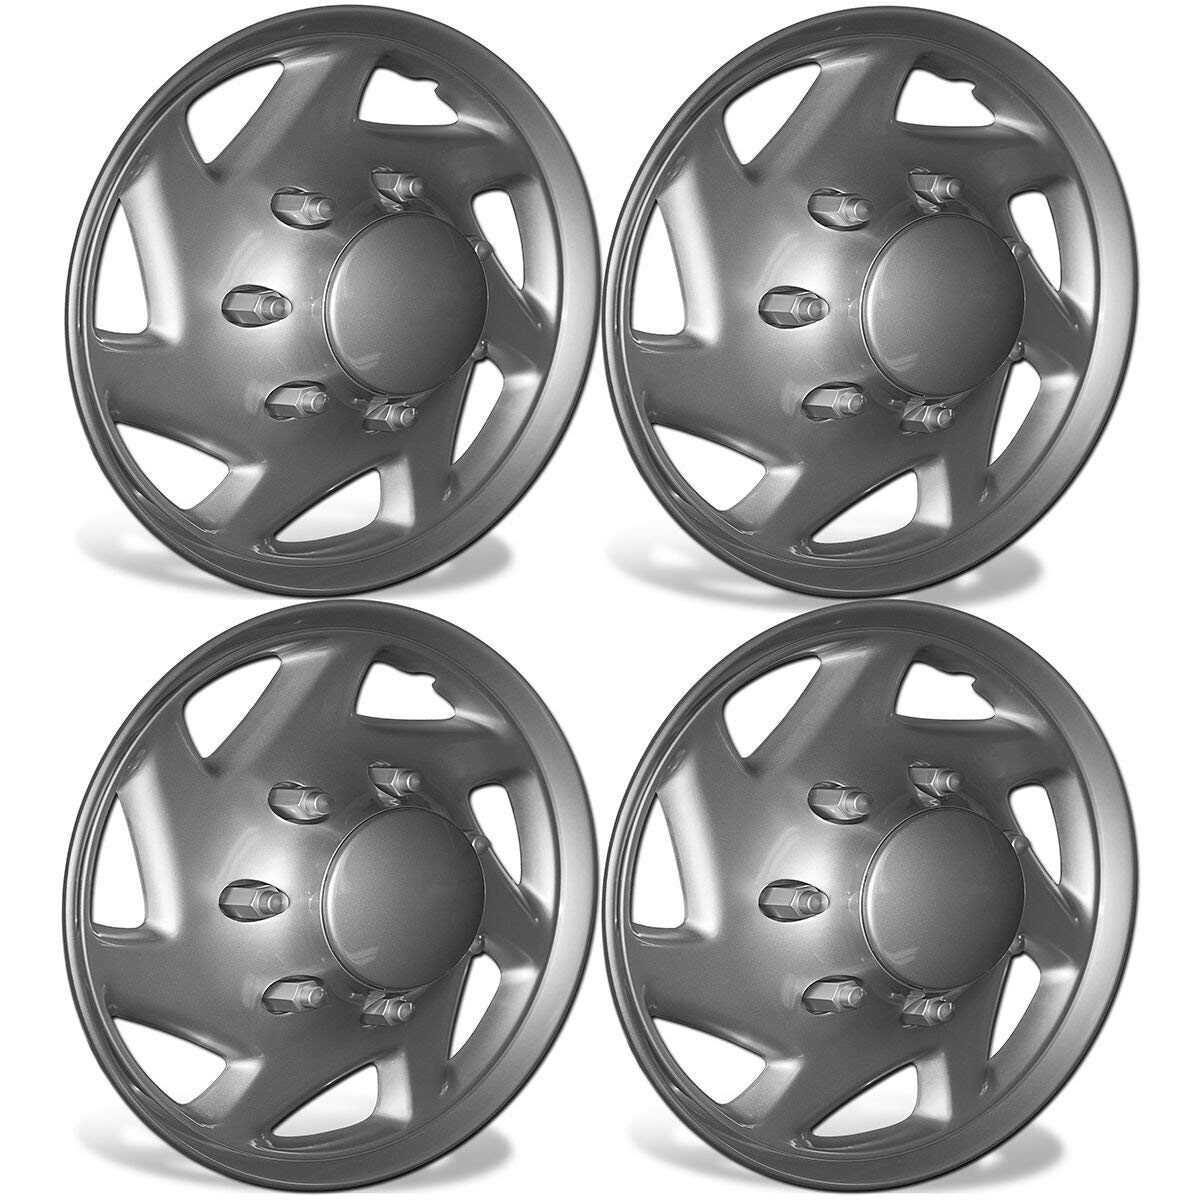 OxGord Hub-caps for Ford E-150 Style Wheel Covers 15 inch Silver